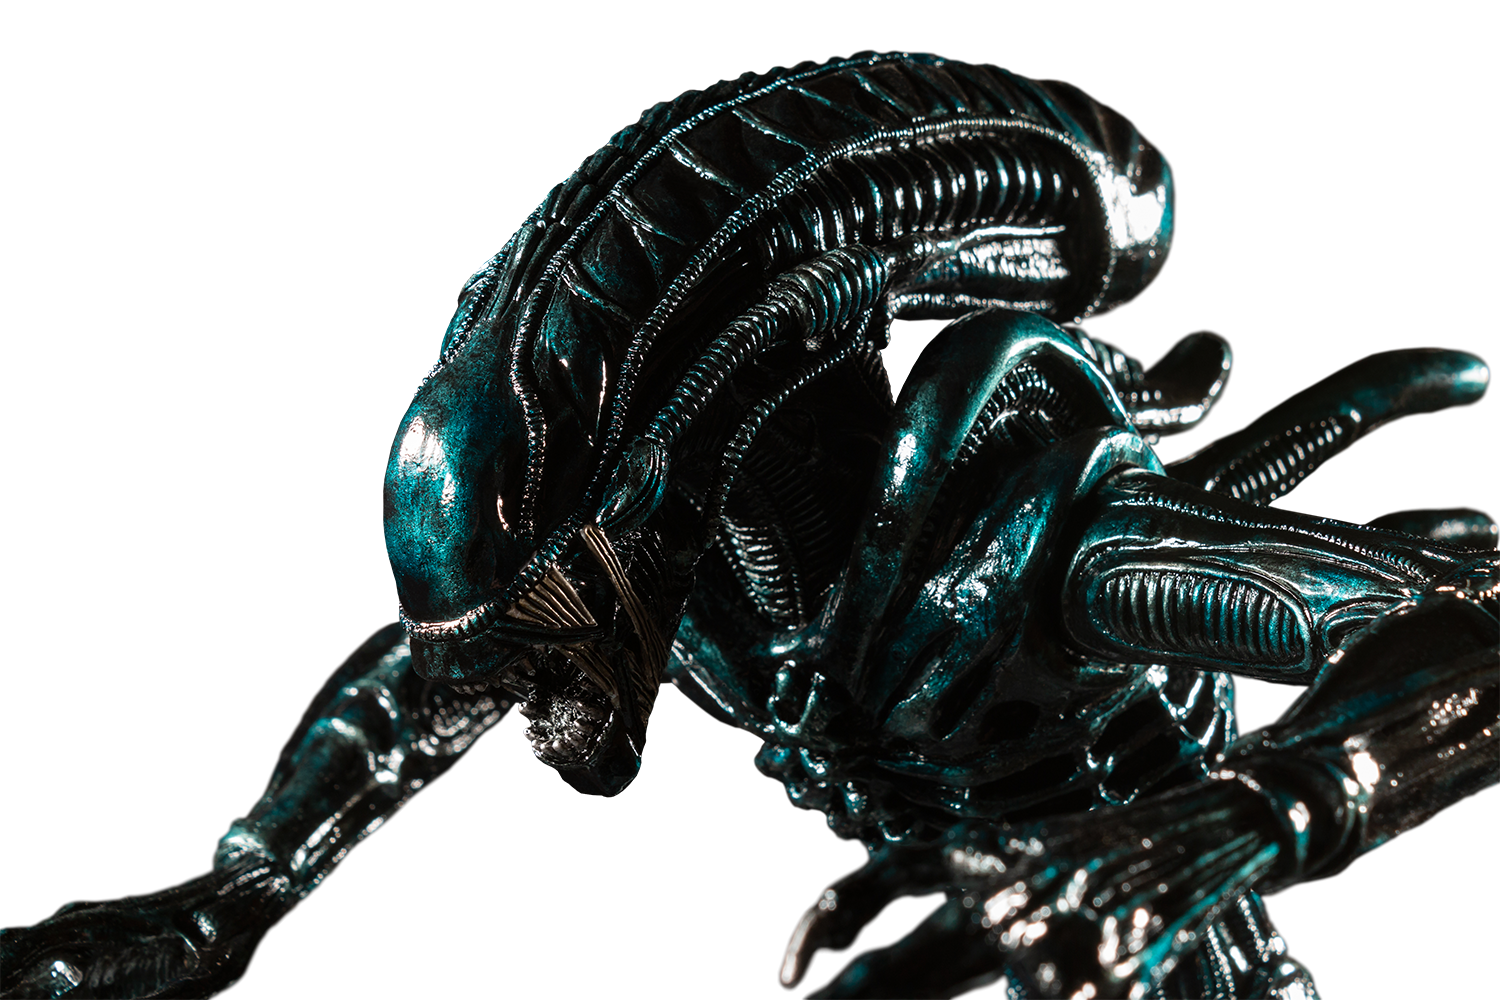 IKO1124-Alien-in-Water-Statue-New-Paint-13-232.png